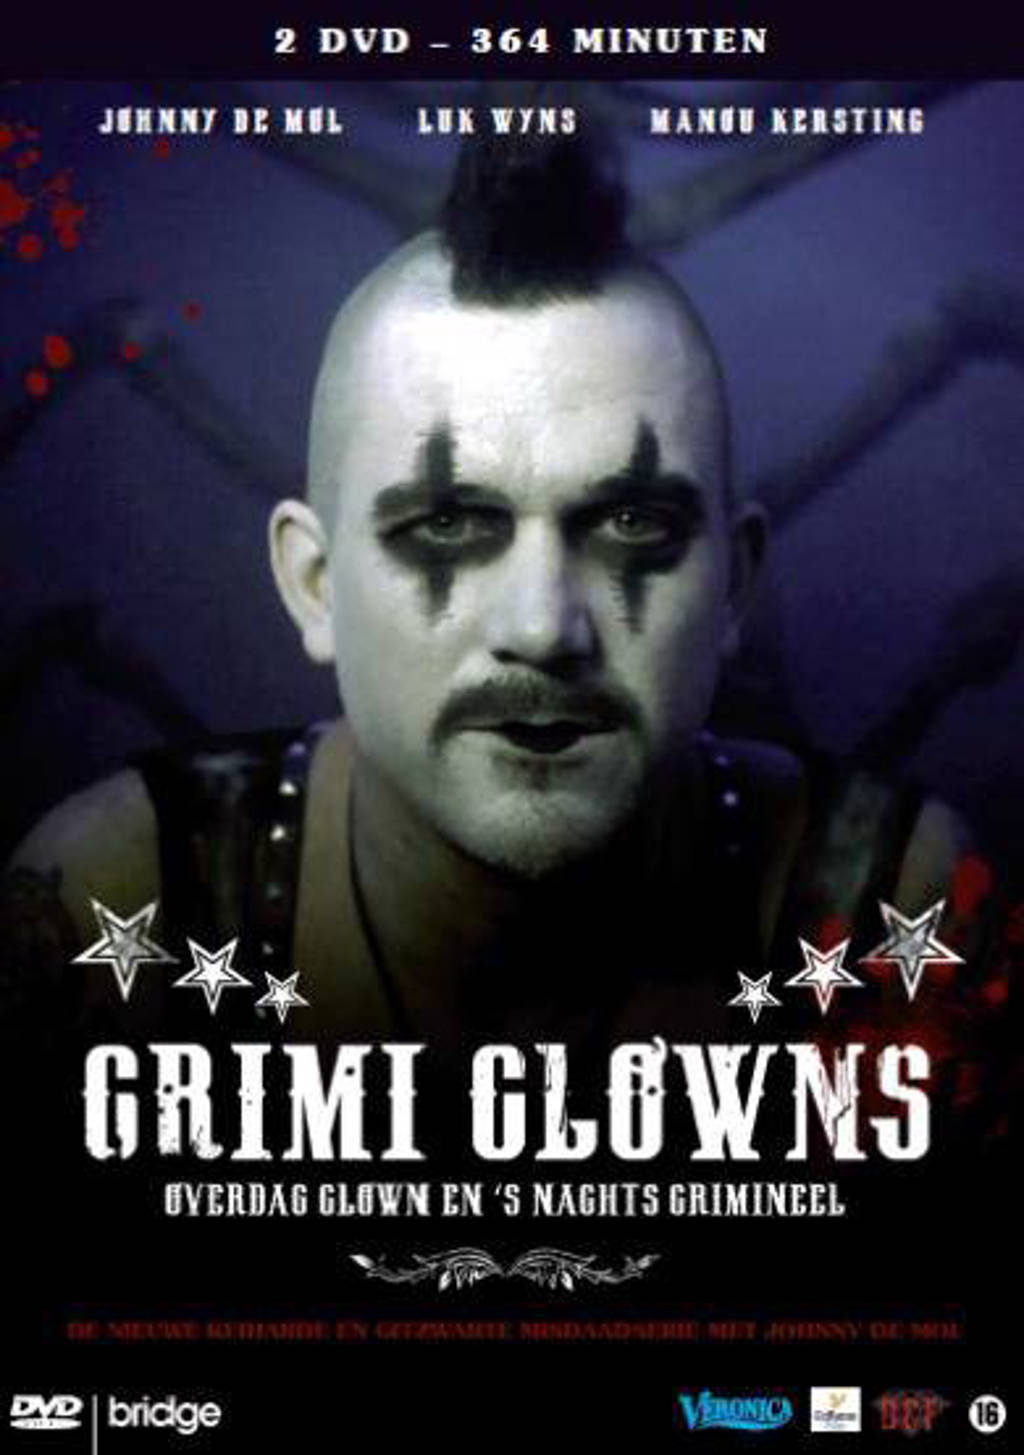 Crimi clowns - Seizoen 1 (DVD)